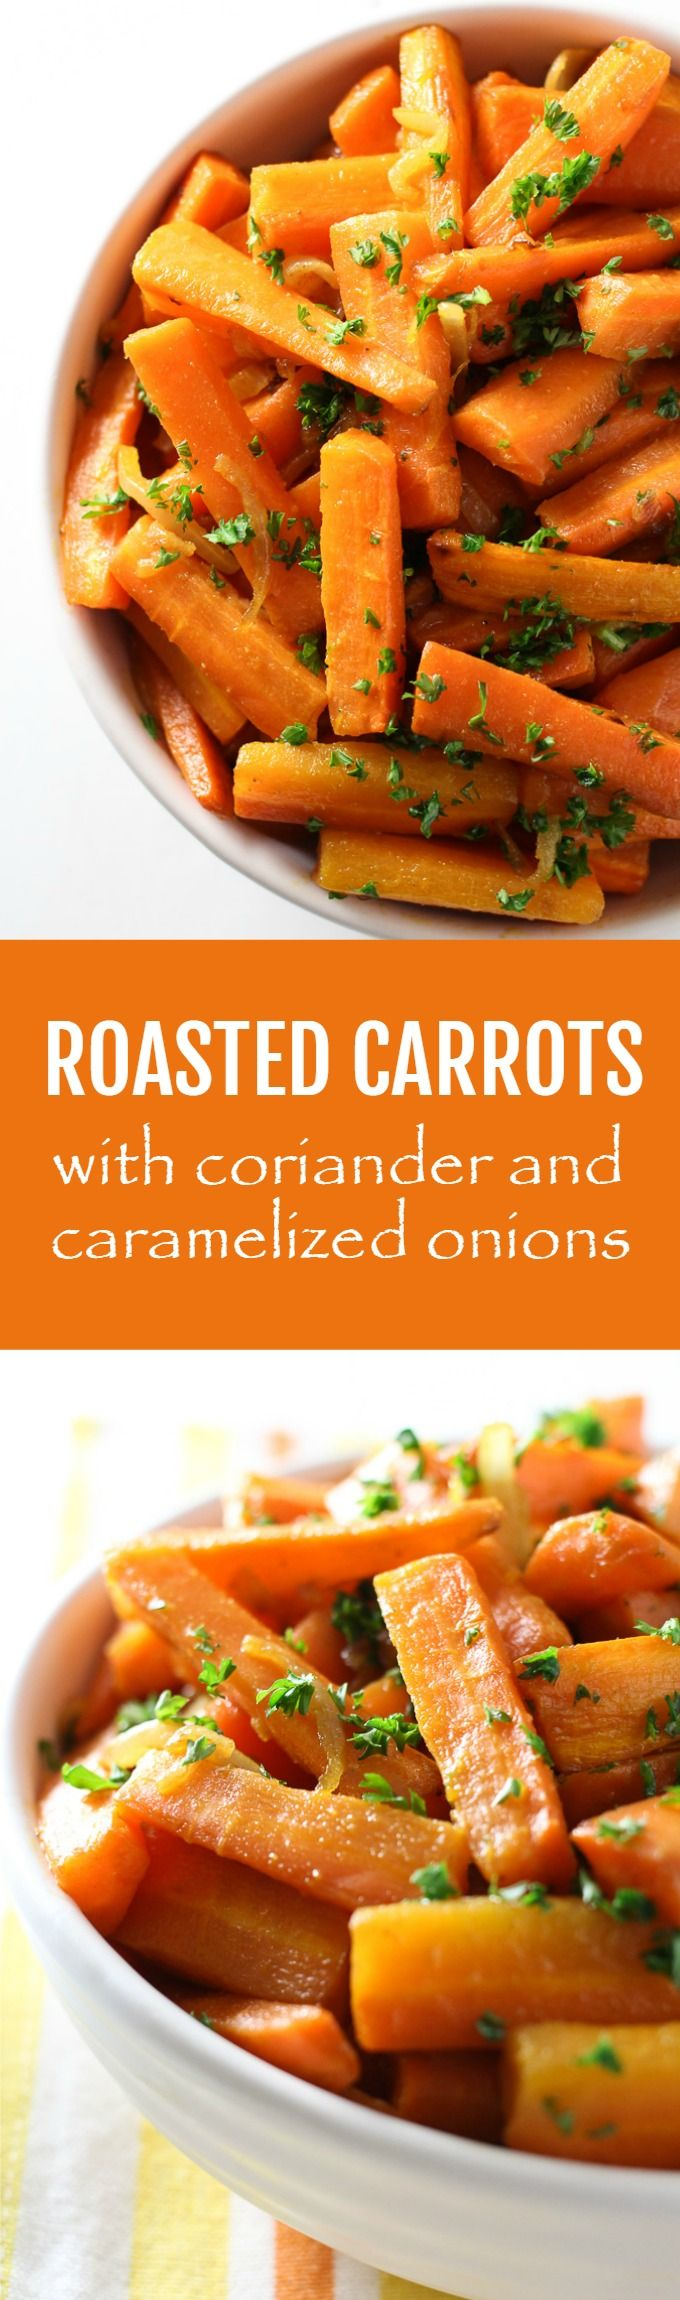 Roasted Coriander Carrots with Caramelized Onions Recipe. This budget-friendly side dish is very easy to make, delicious, and healthy.